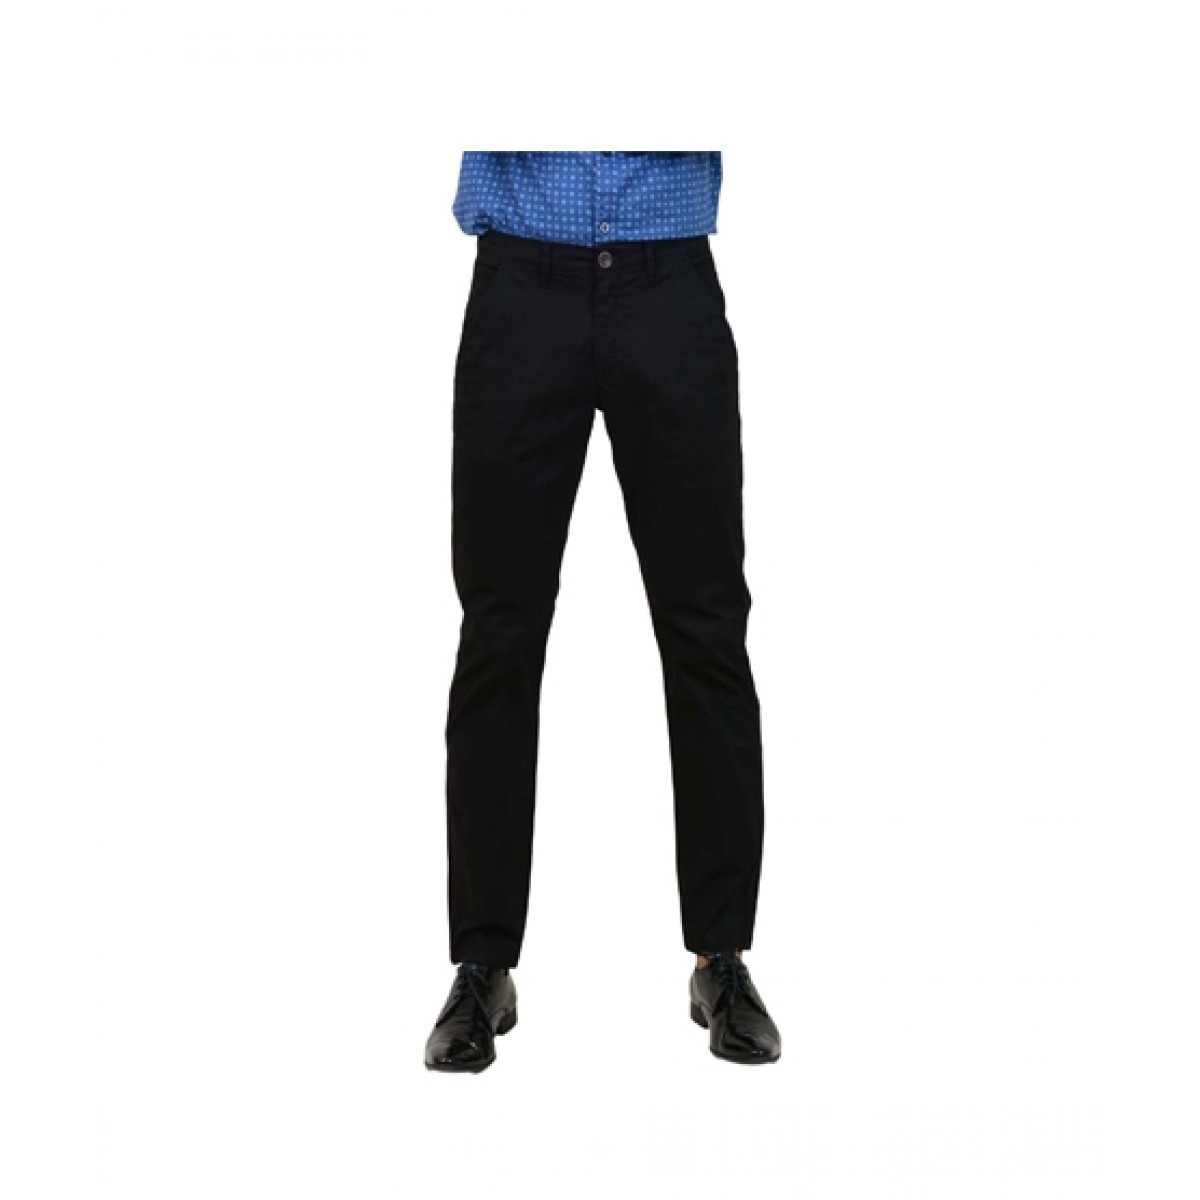 IGNITE Comfortable Stretchable Chino For Men Black